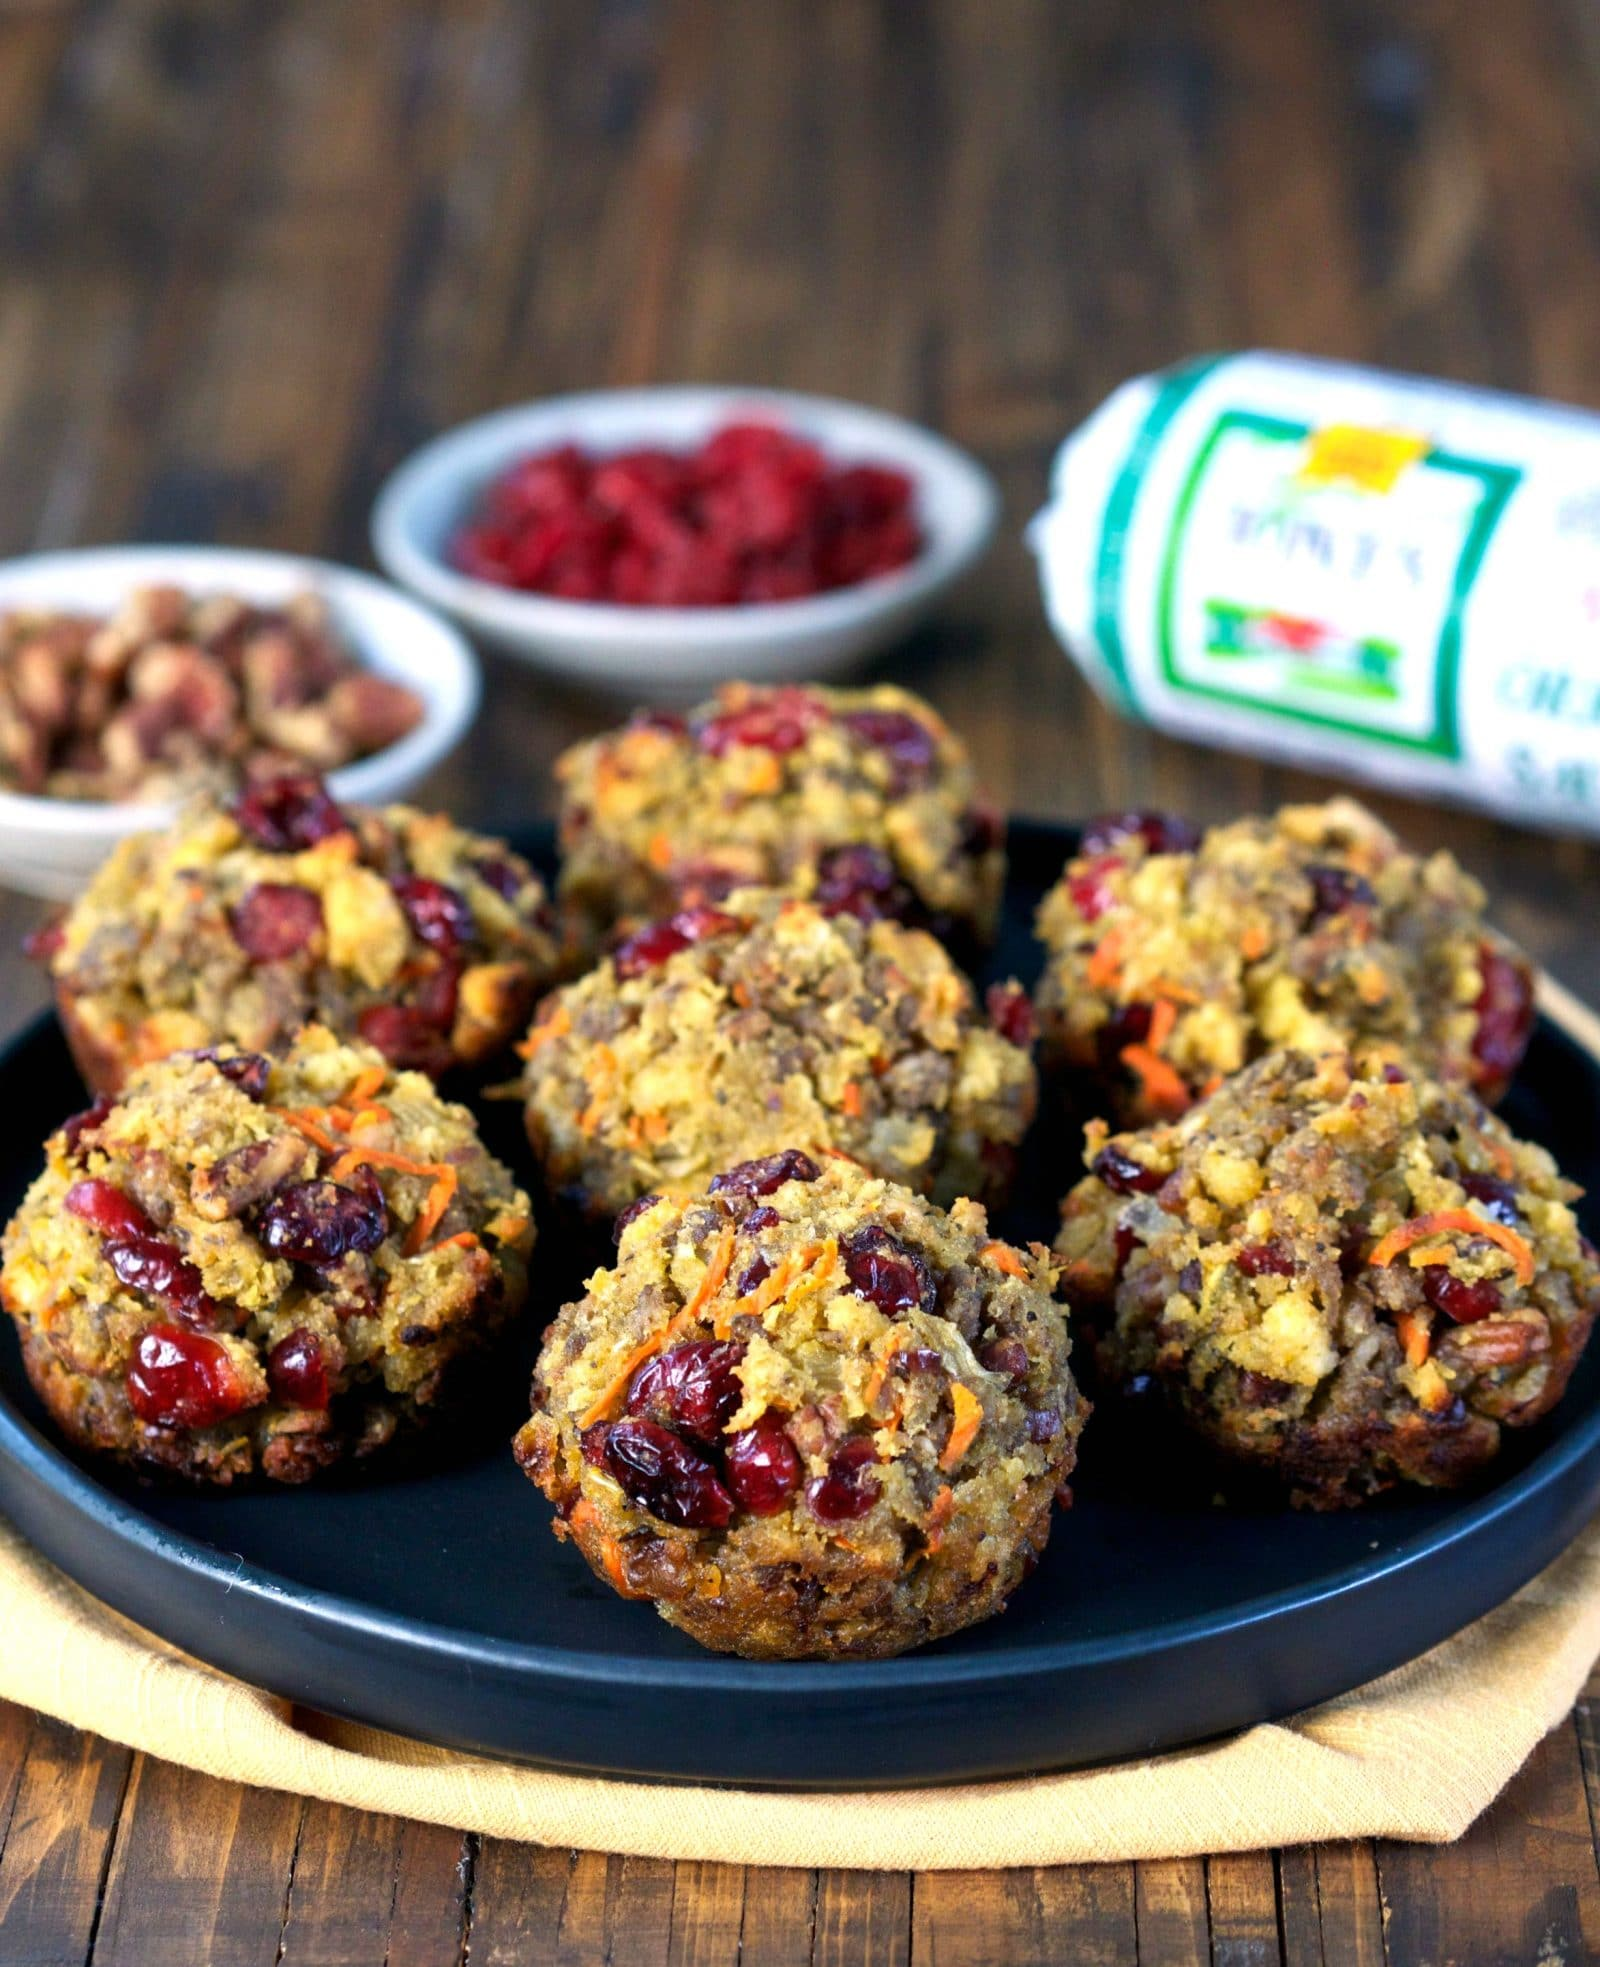 Sausage Cornbread Stuffing Muffins. Cornbread stuffing mixed with sausage, dried cranberries, shredded carrots & toasted pecans & baked in muffin tins. Simply Sated